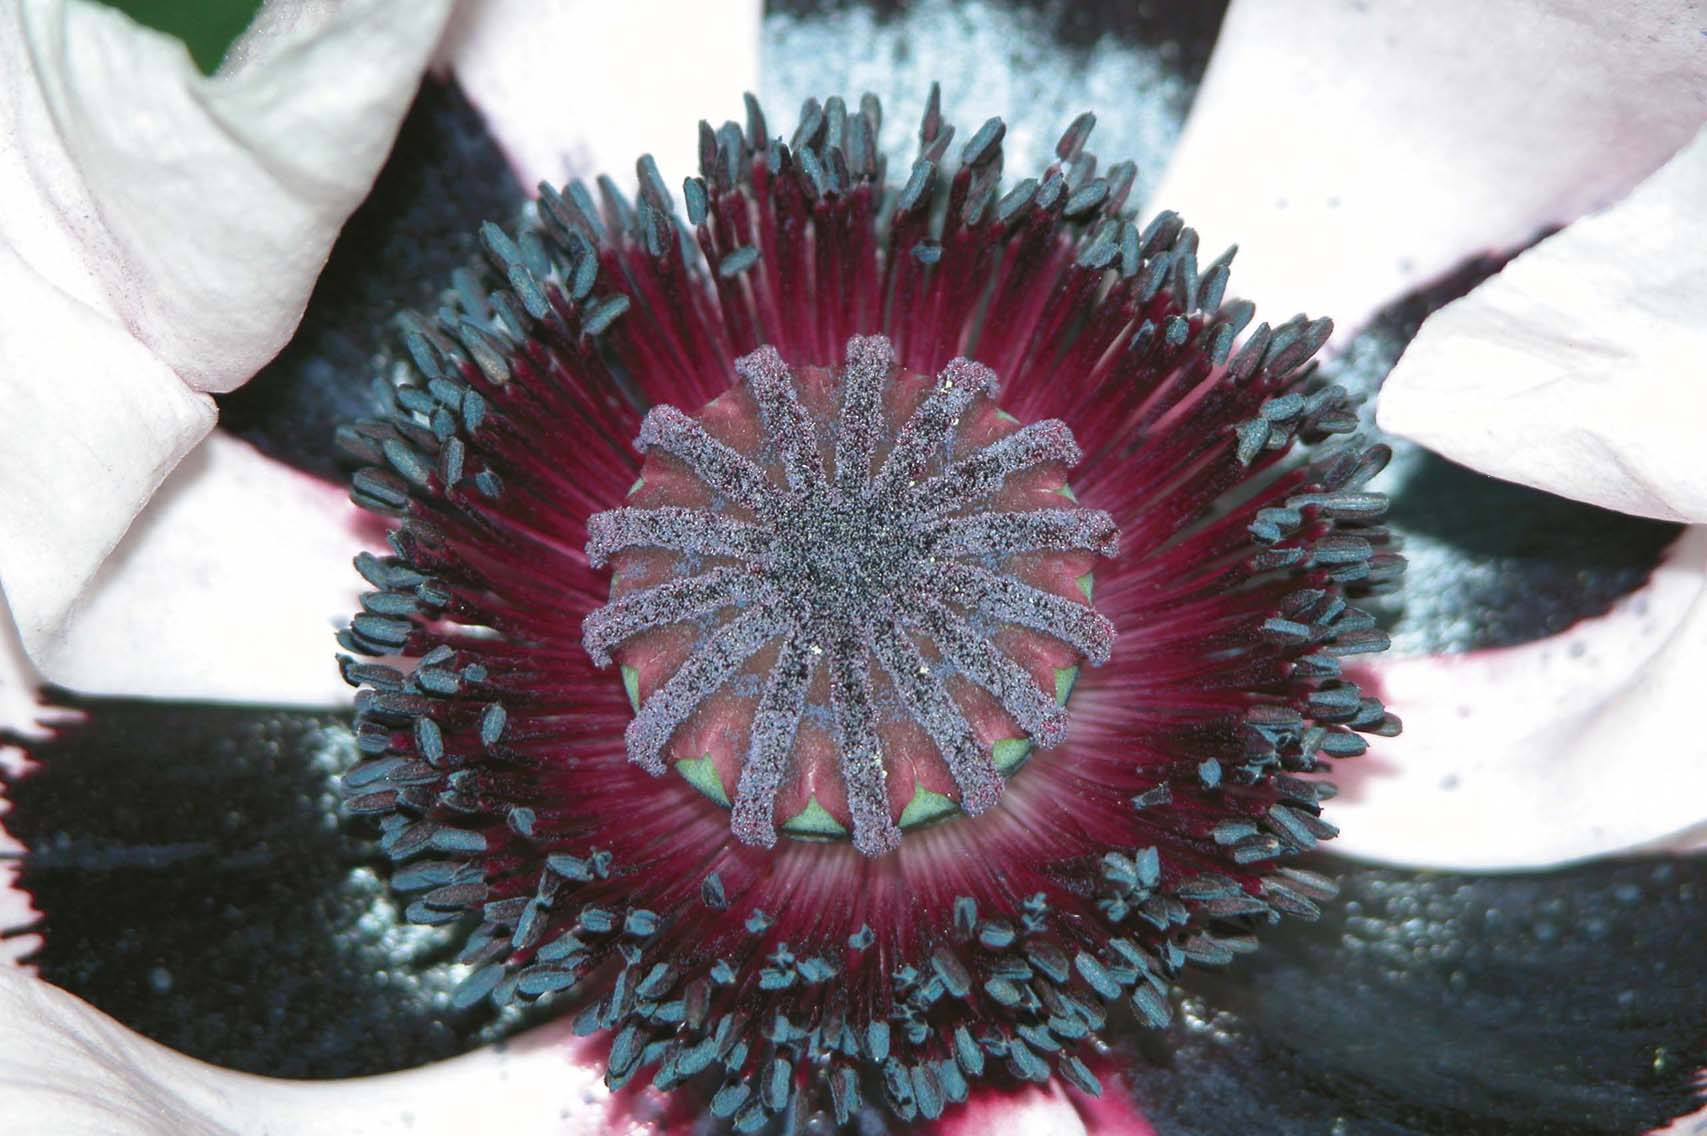 Physical Atomic Cellular Evolution™ photo of poppy center, black, white, maroon